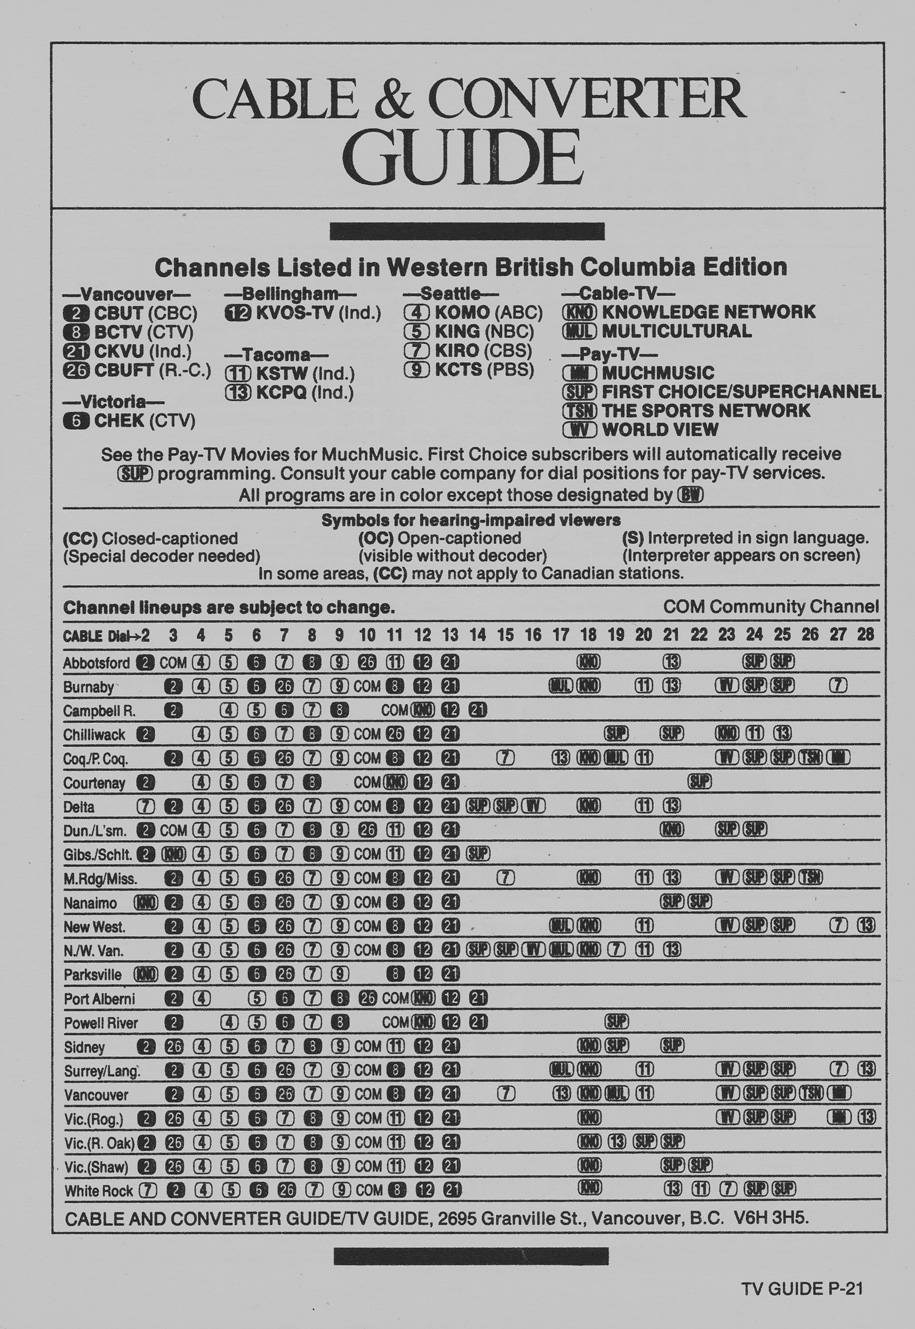 TV Guide September 1 1984 Western British Columbia Edition Cable & Converter Guide